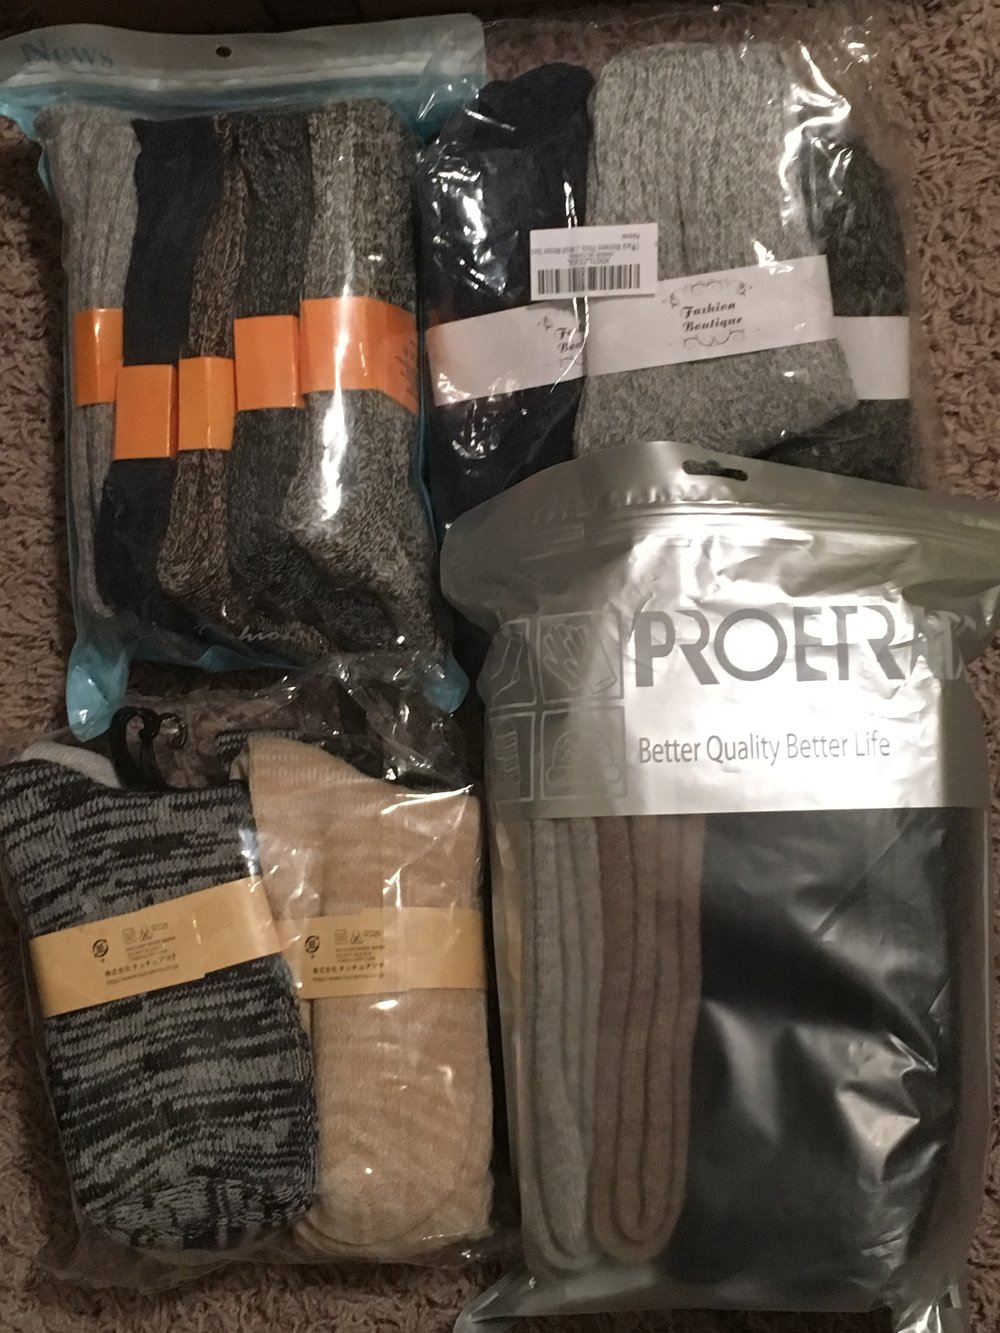 Some people living on the street wear their socks for a month at a time. We had some generous donors help supply us with nice pairs of wool socks this month. Thank you!